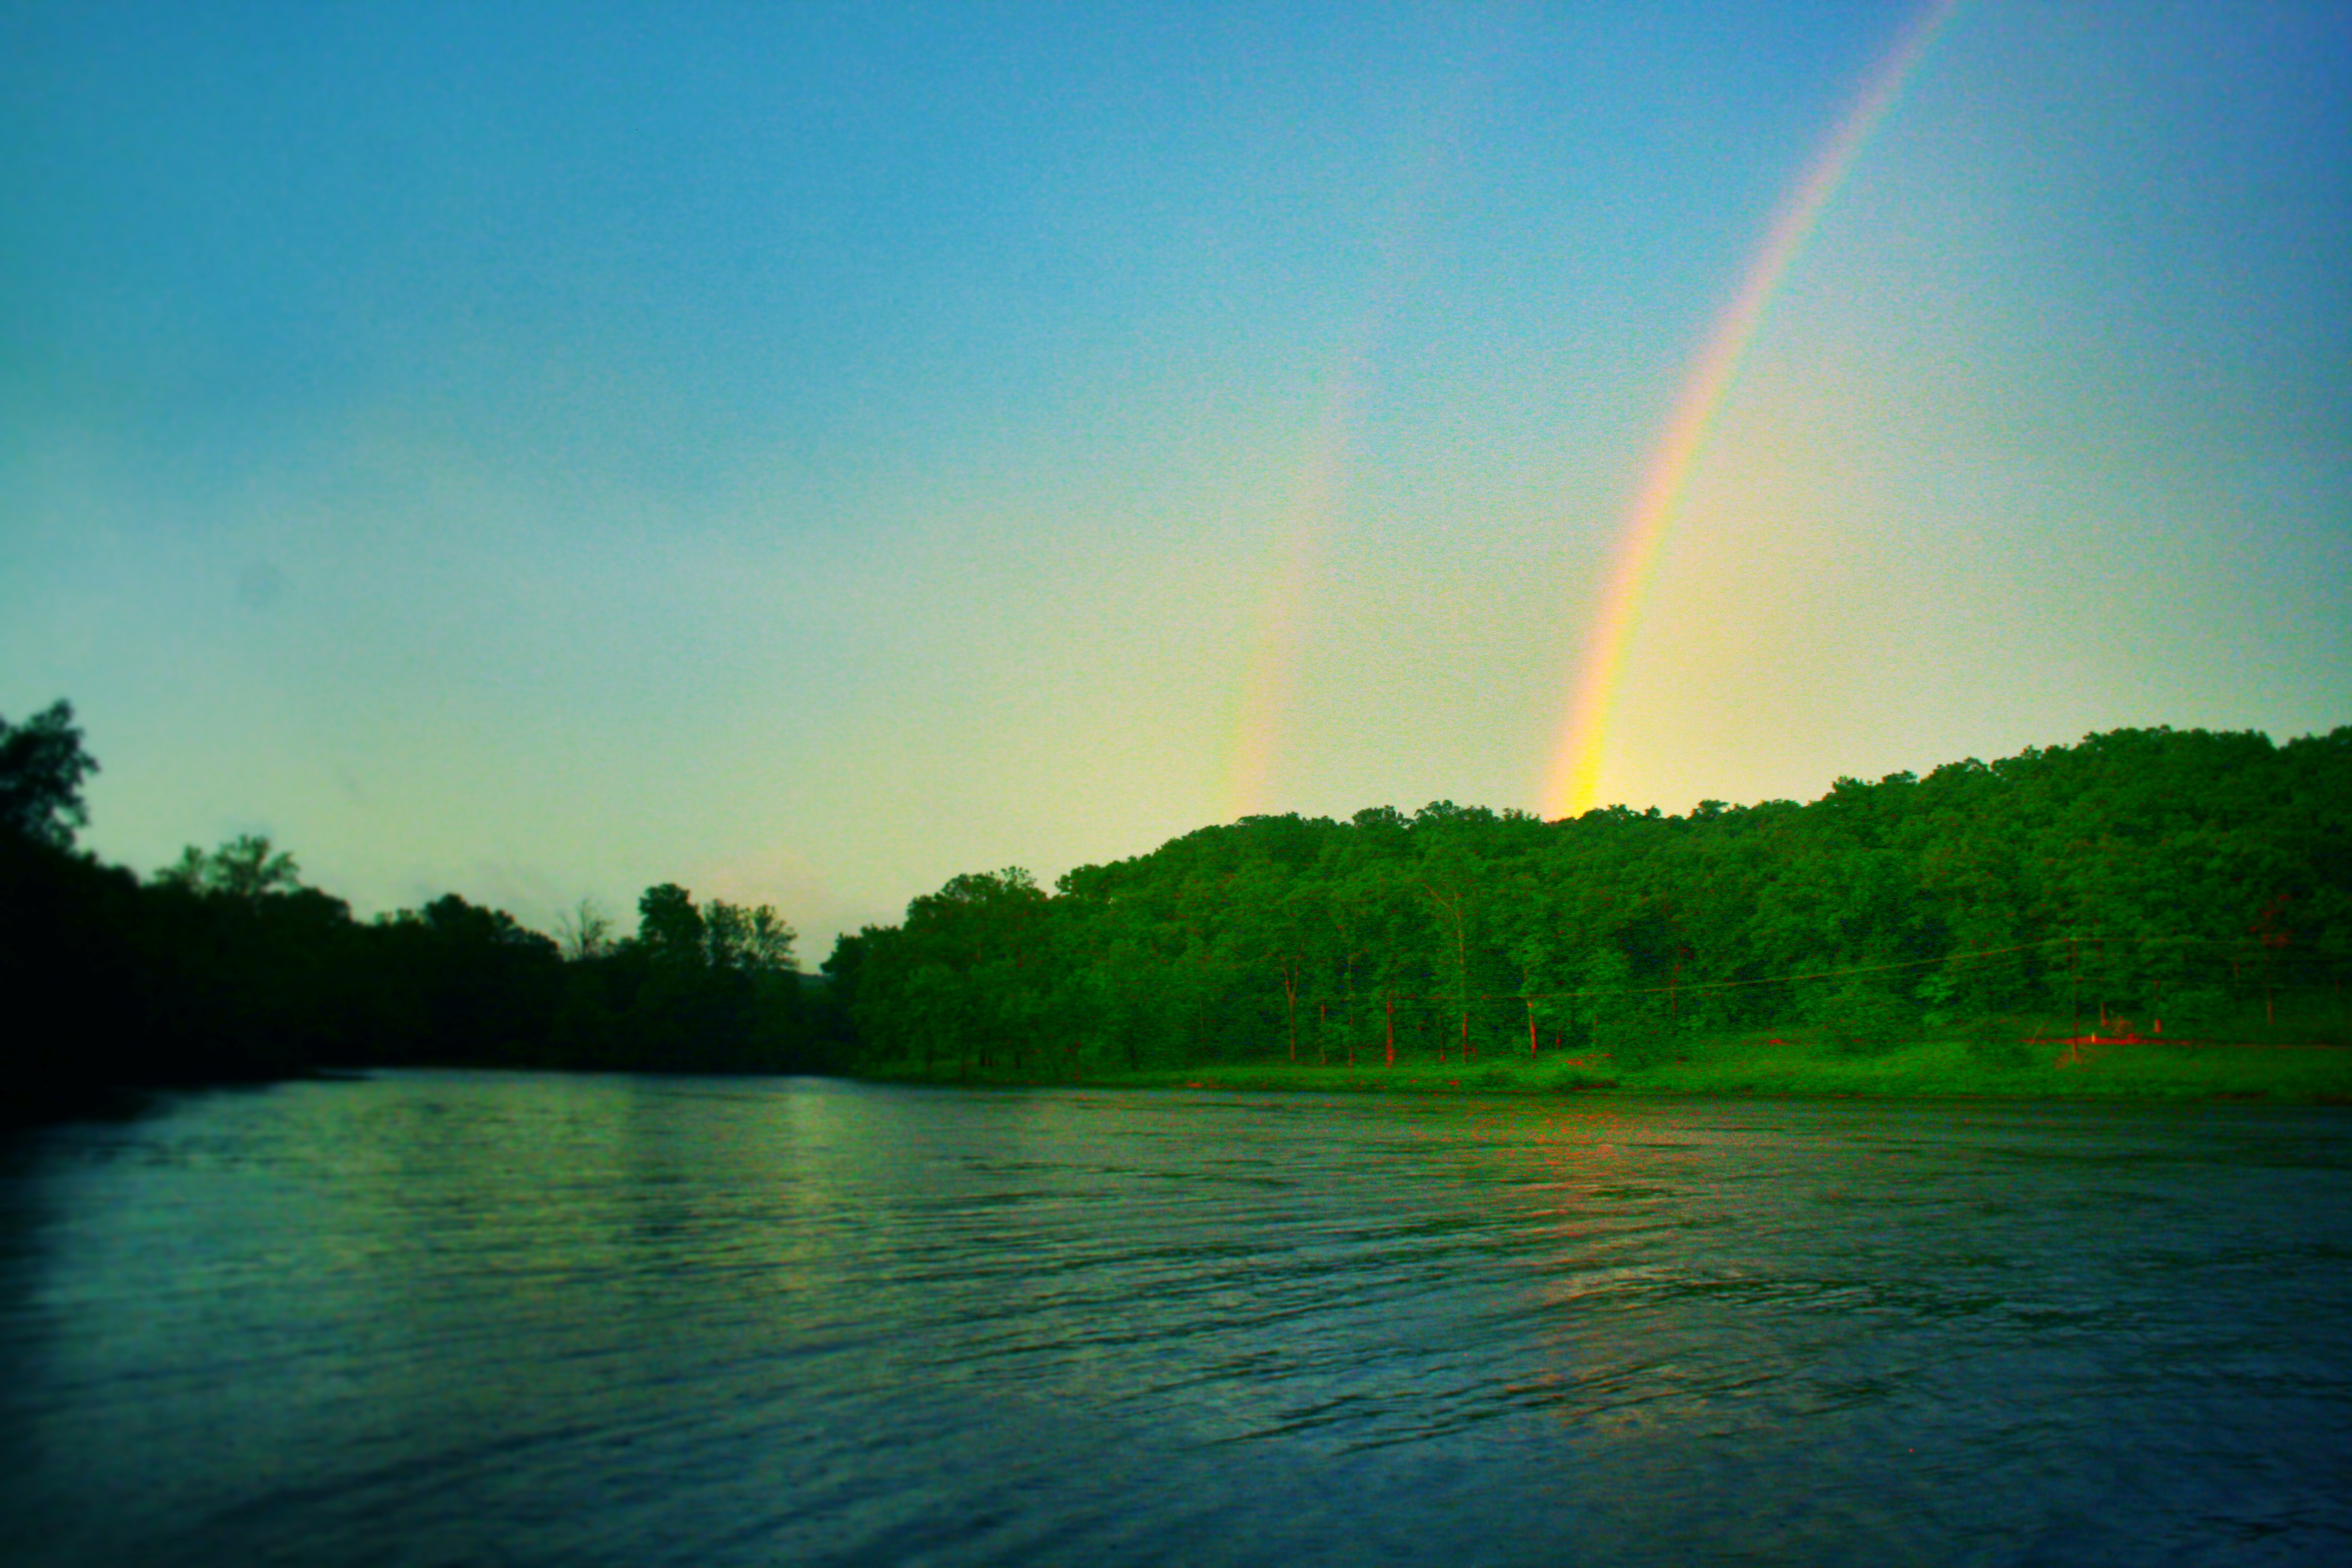 Right Here, Under the Rainbow